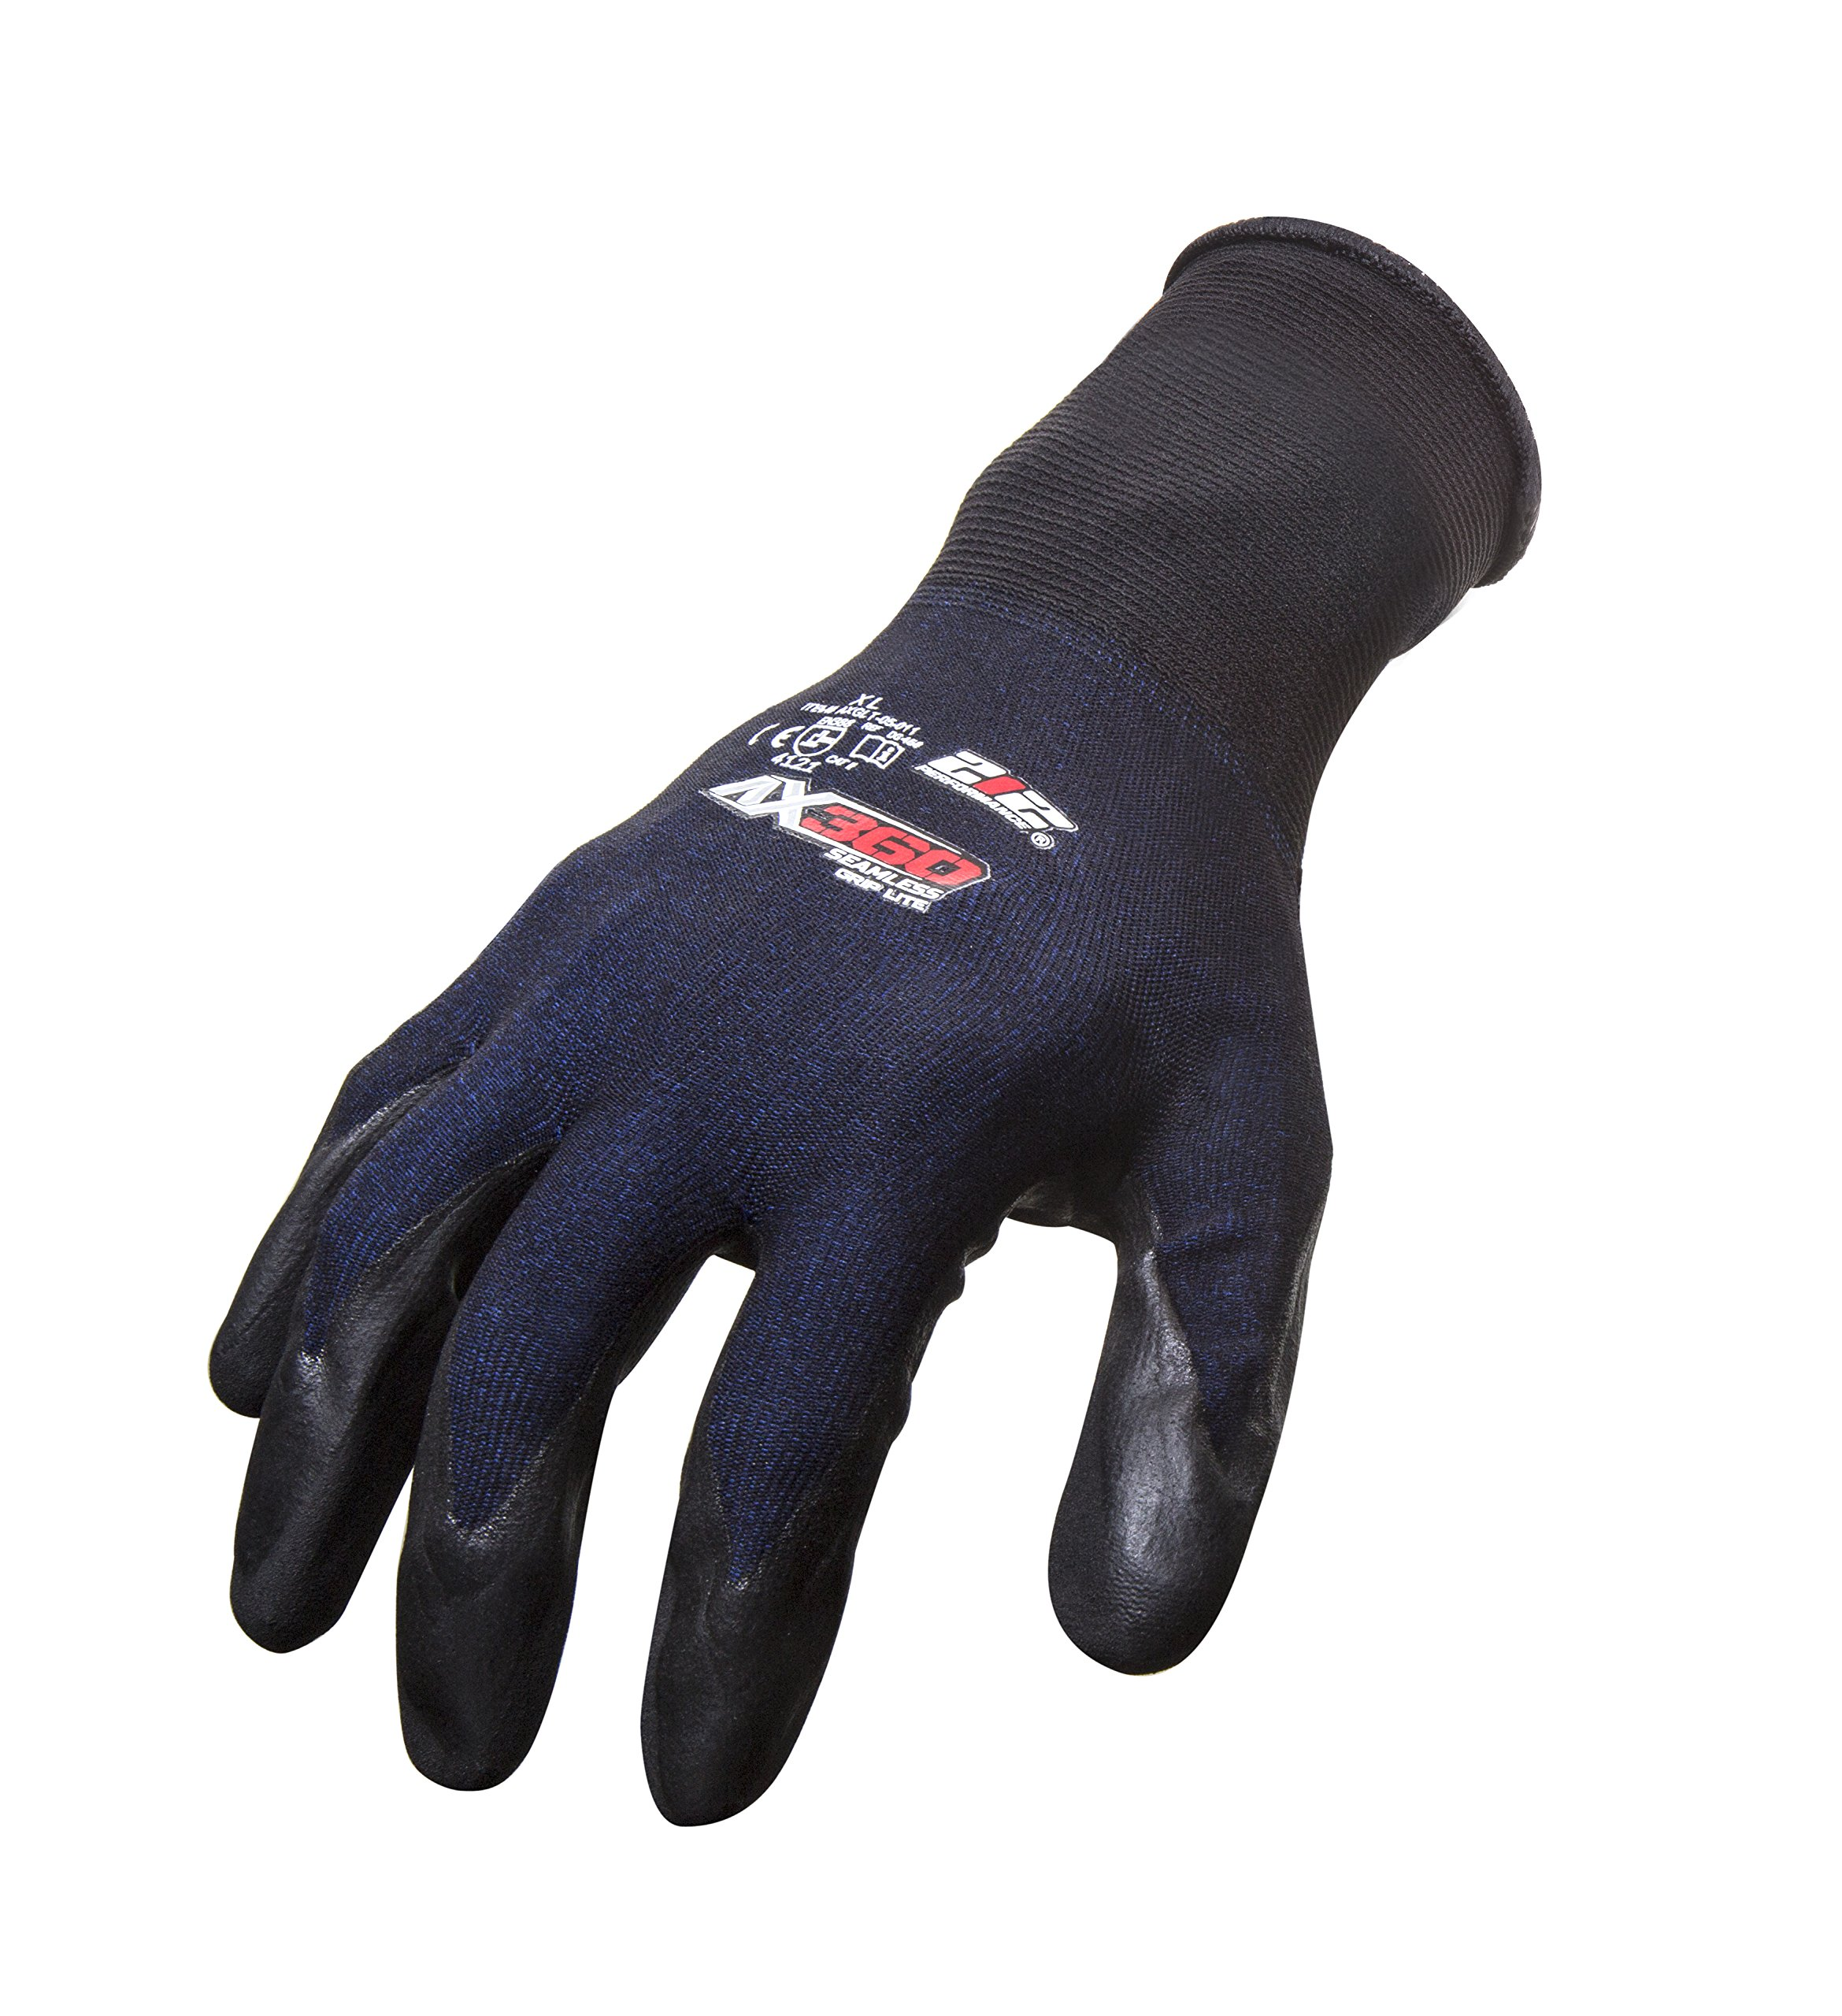 212 Performance Gloves AXGLT-05-008PR AX360 Grip Lite Nitrile-dipped Work Glove, 1-Pair, Small